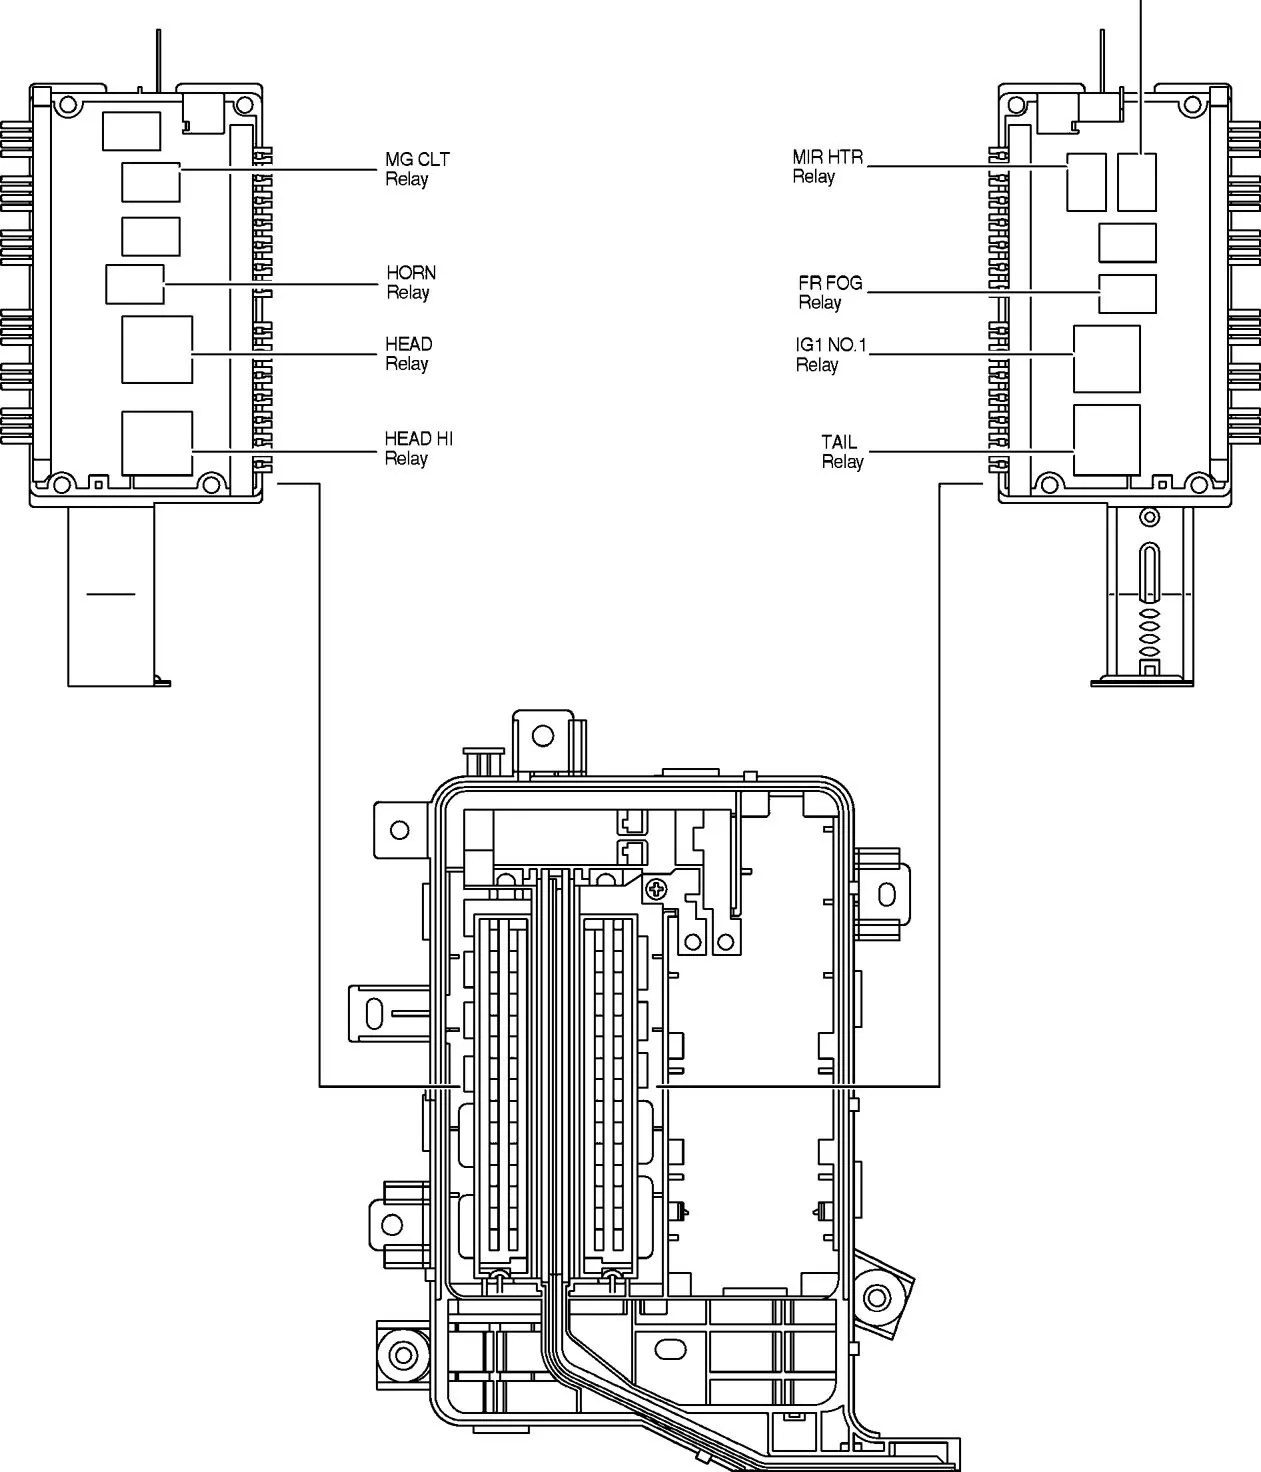 hight resolution of 94 toyota previa engine diagram toyota auto wiring diagram 2004 toyota matrix fuse box diagram toyota